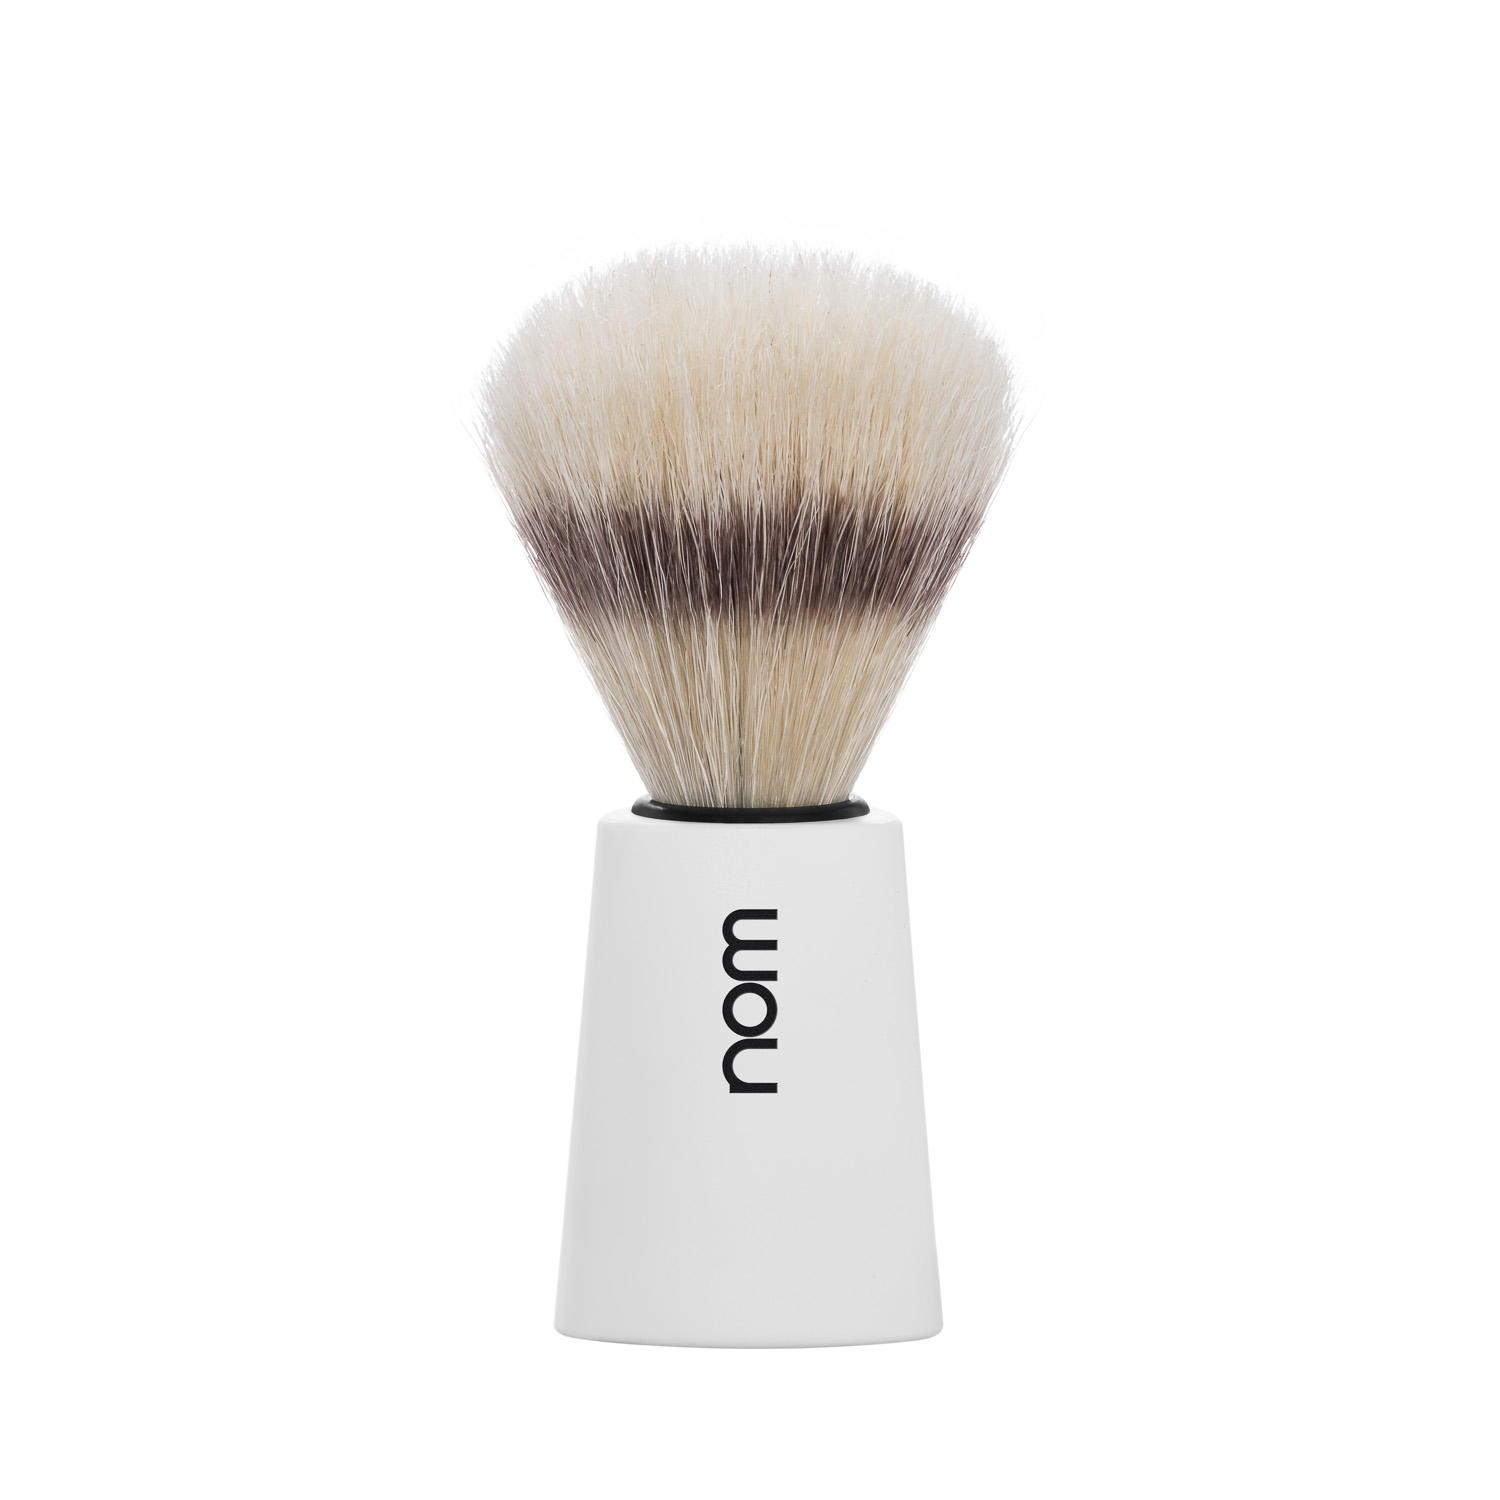 CARL41WH NOM, CARL white, pure bristle shaving brush